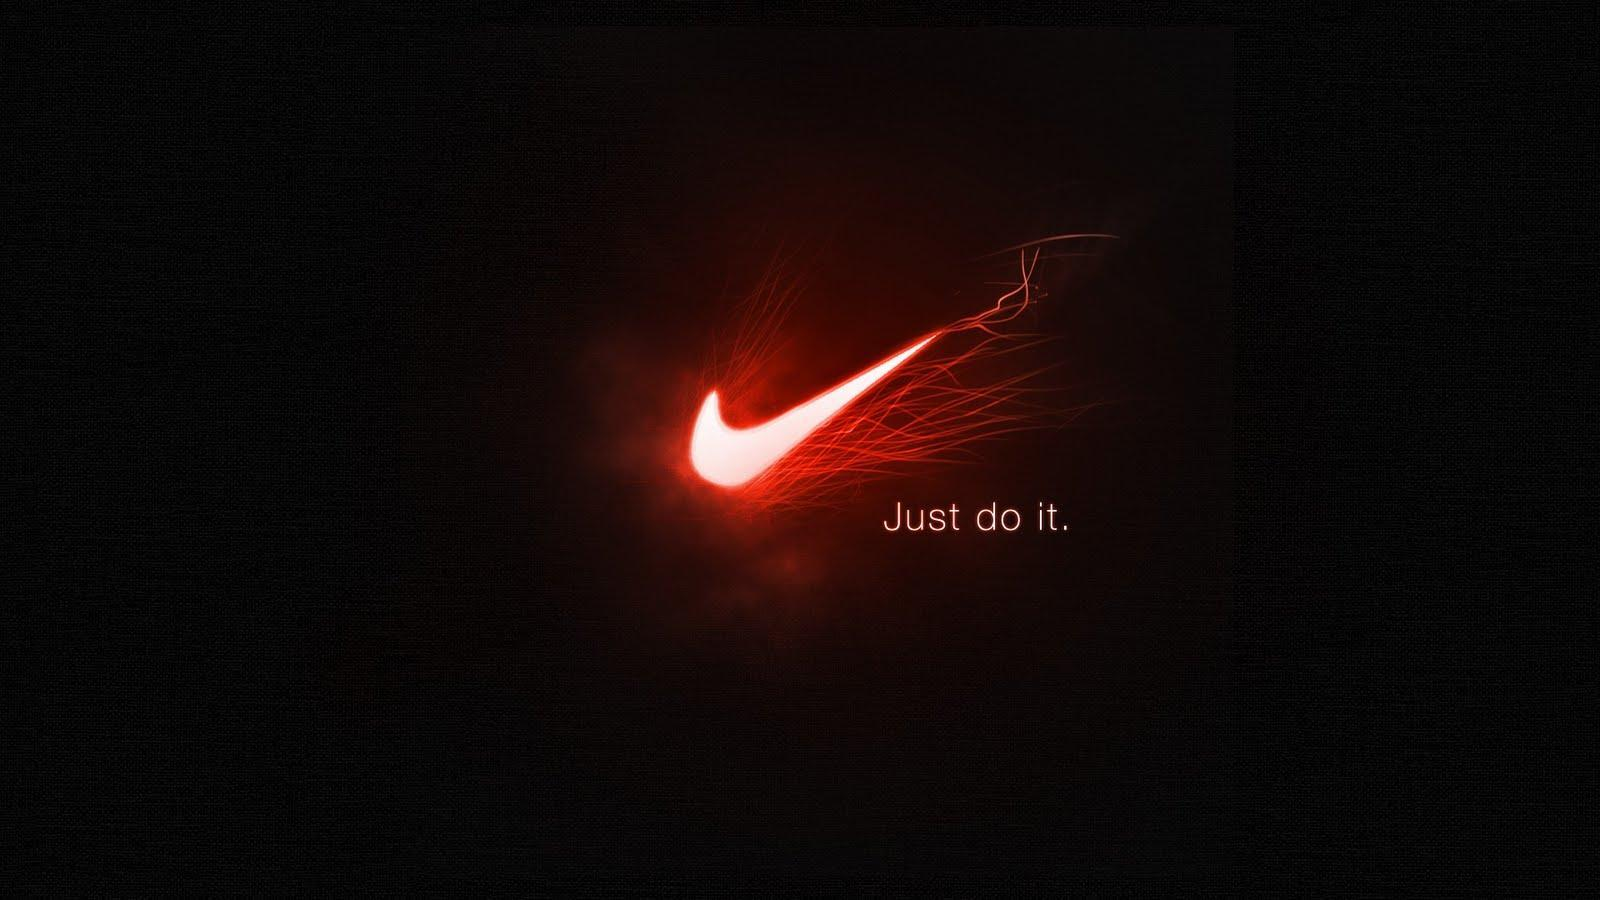 Image For > Nike Swoosh Iphone Wallpapers